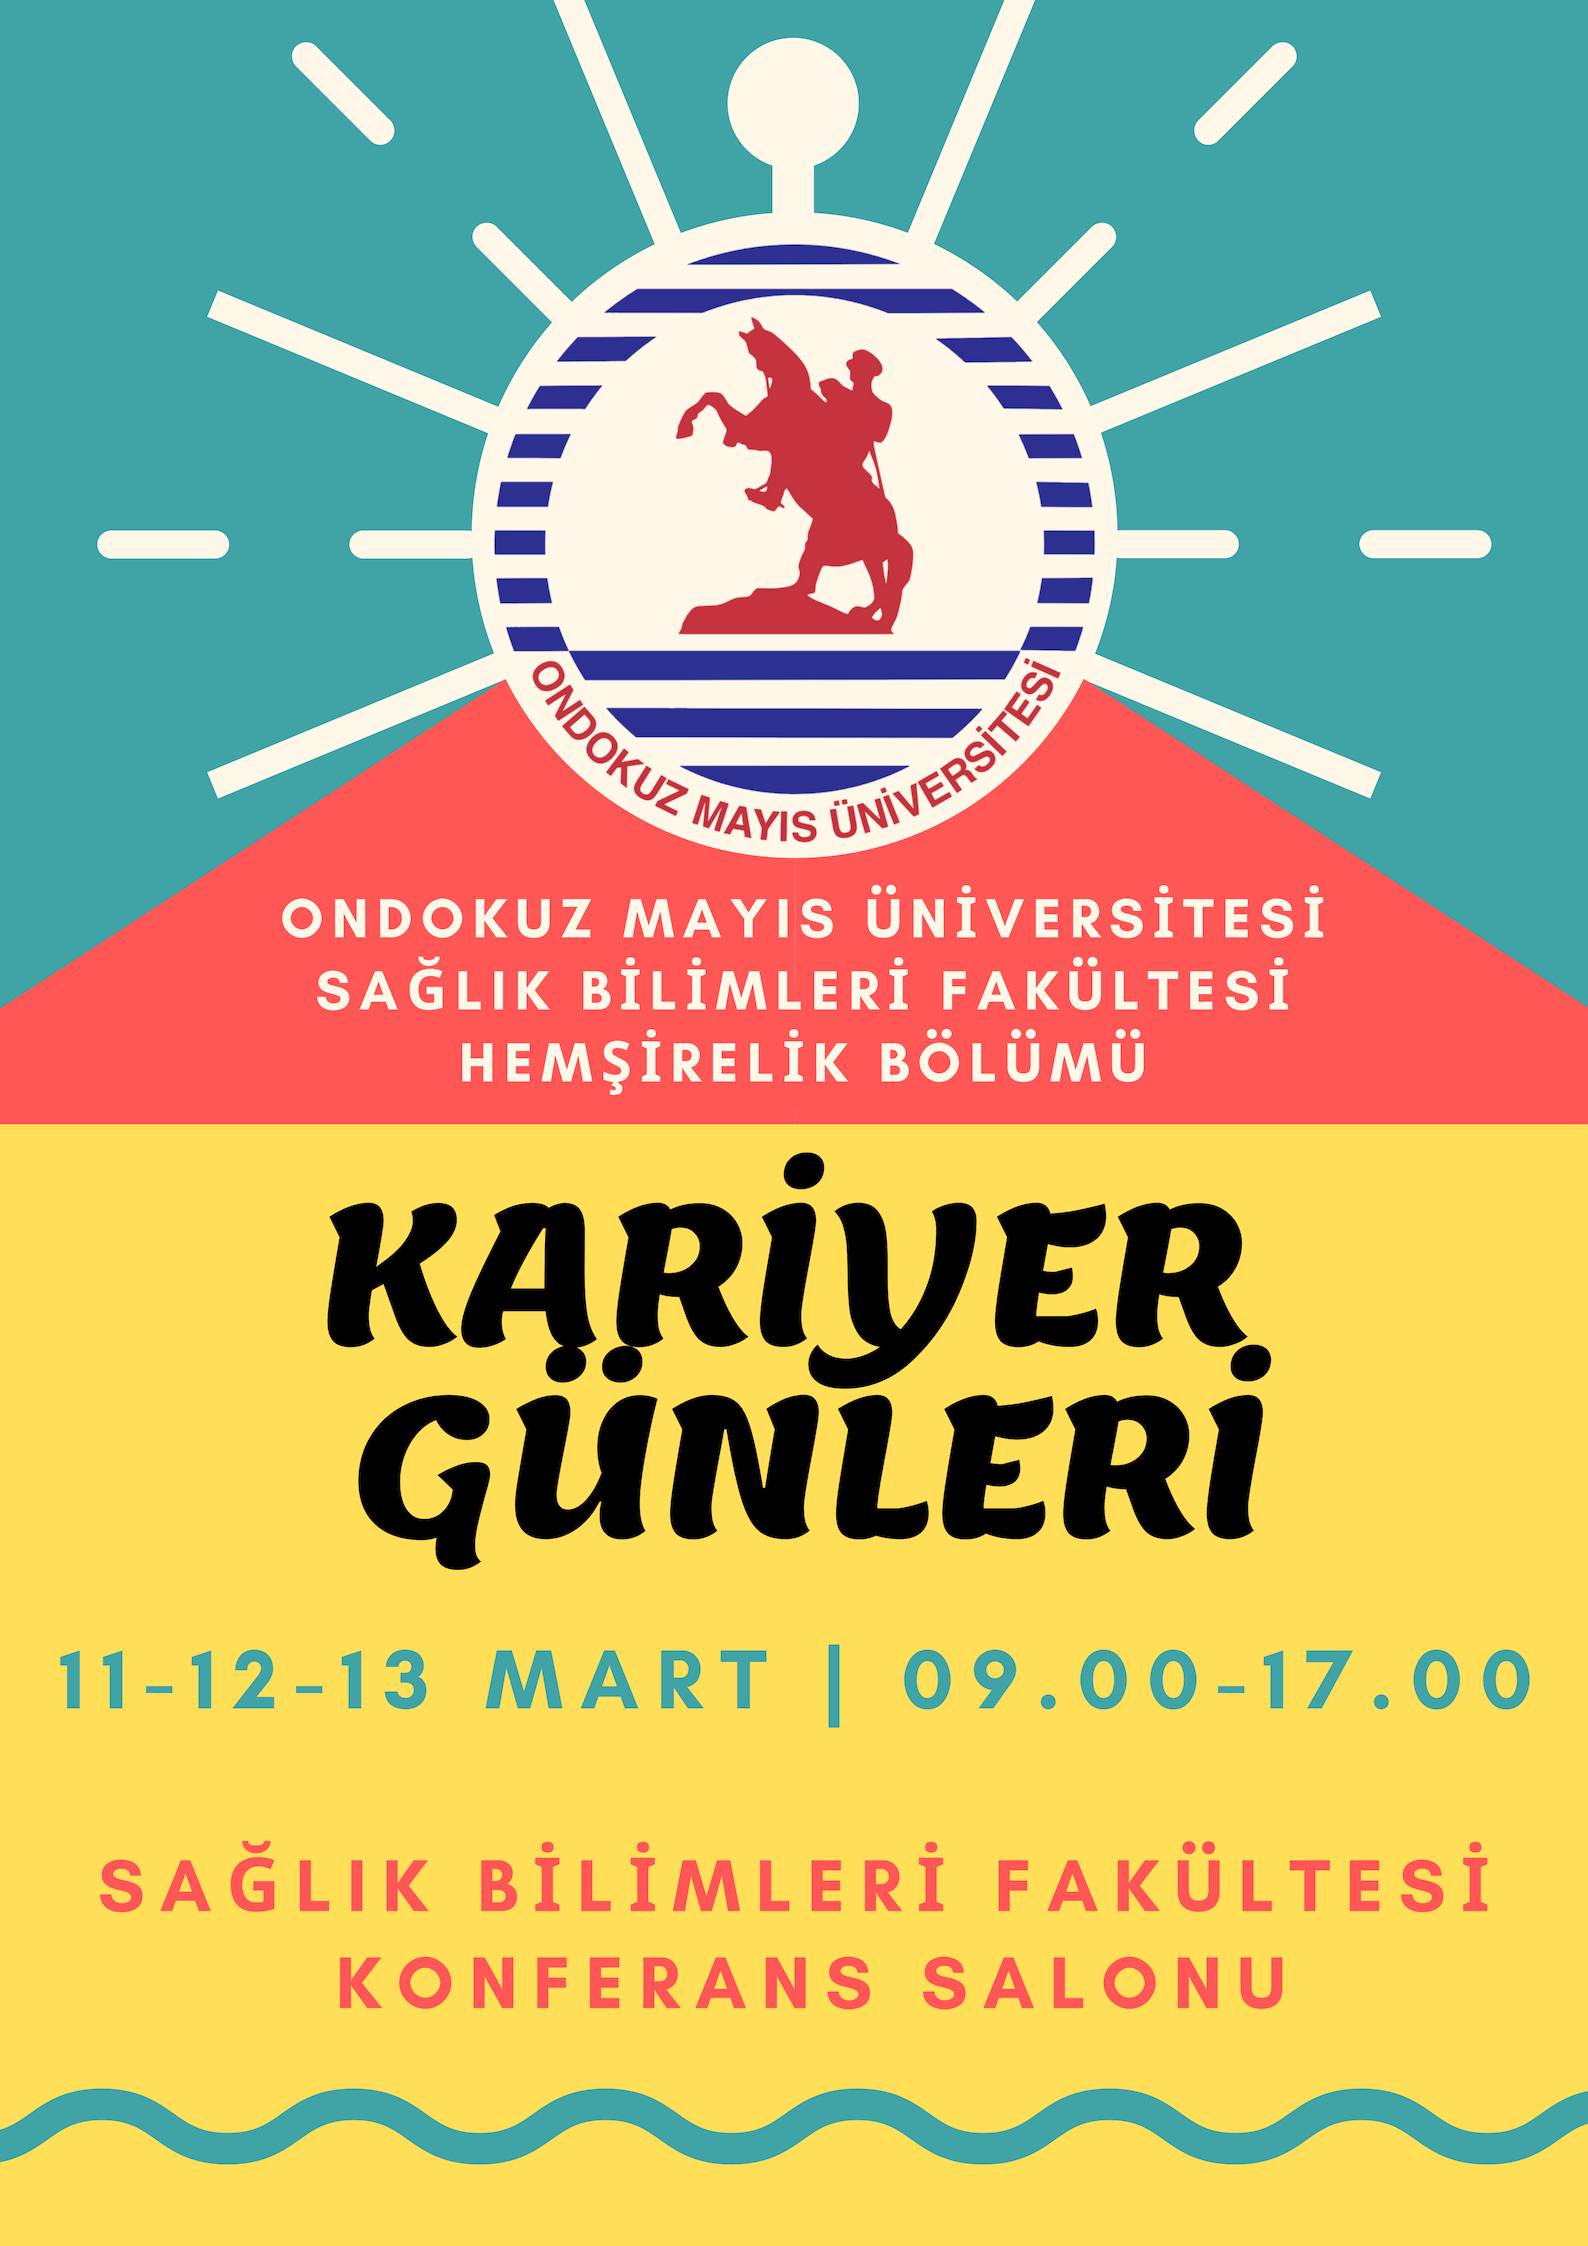 http://www.omu.edu.tr/sites/default/files/kariyer_gunleri.jpg